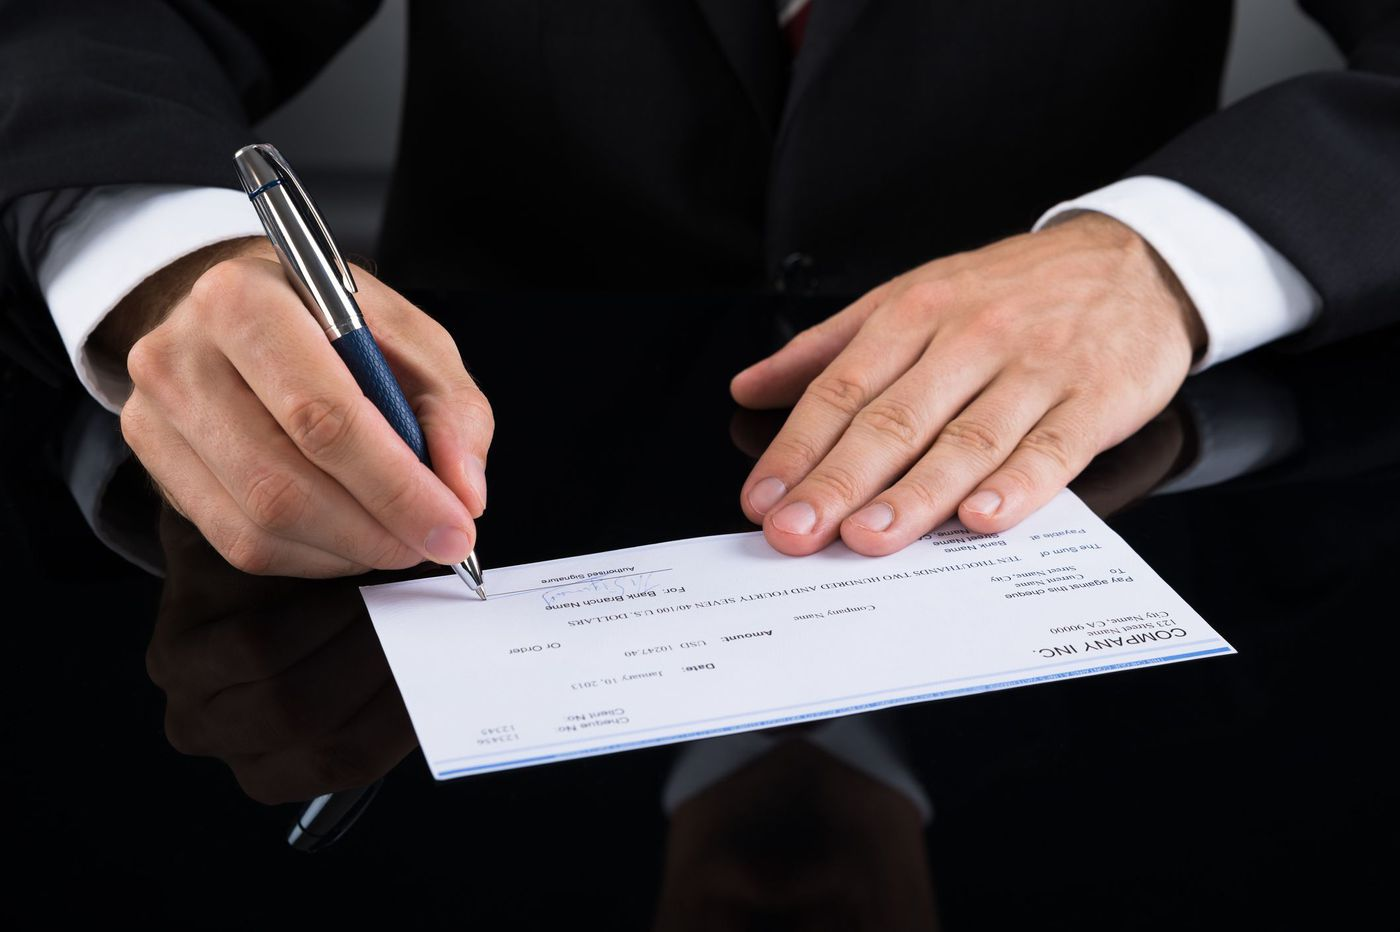 A Montgomery County man thought he finally got a job. Instead, he got scammed out of $8,500